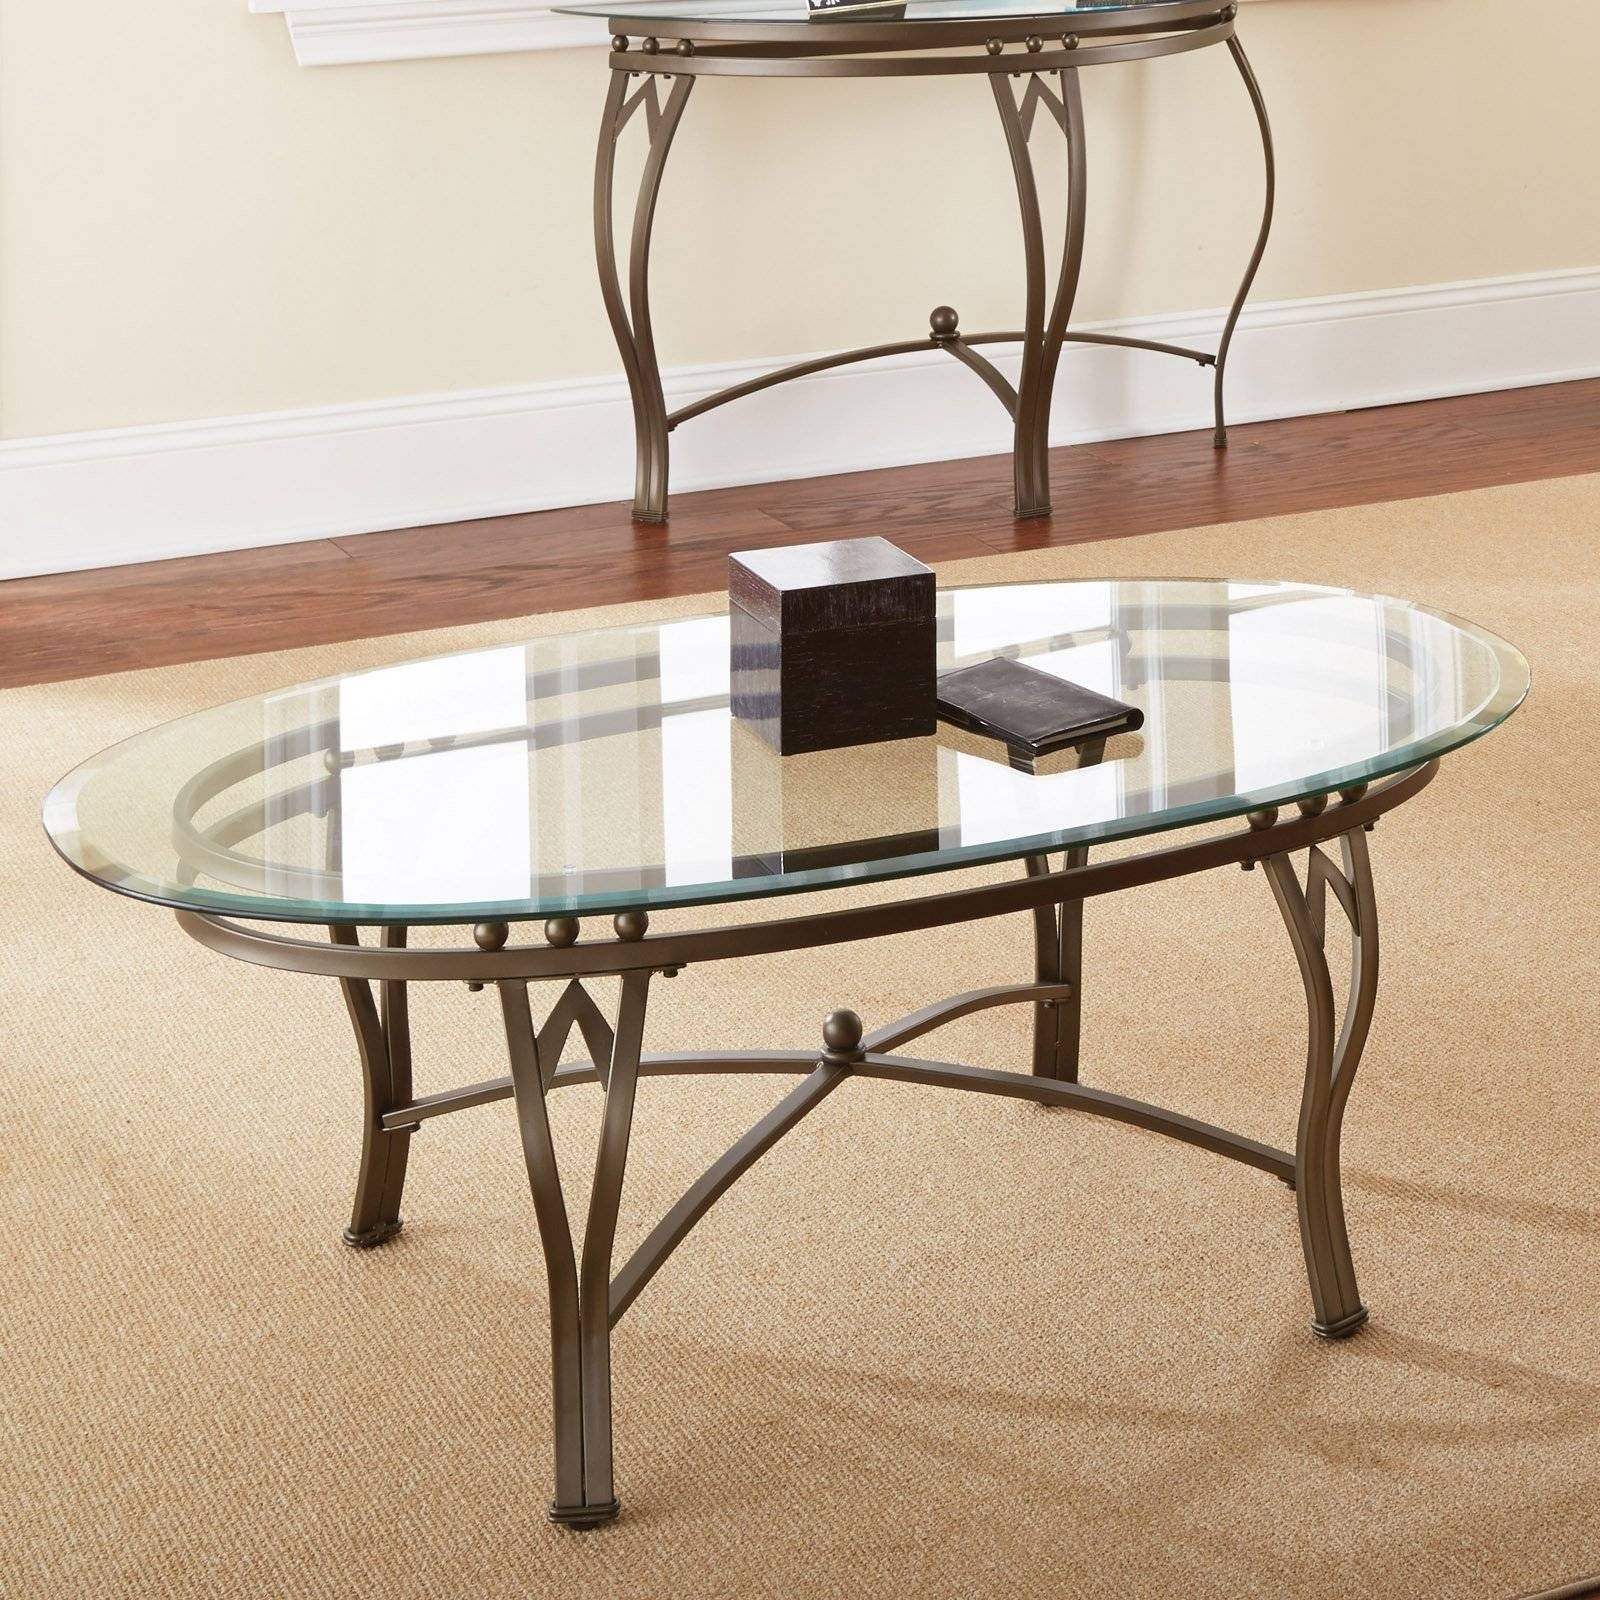 Coffee Table: Cozy Glass Oval Coffee Table Design Ideas Small Oval intended for Oval Glass and Wood Coffee Tables (Image 4 of 30)